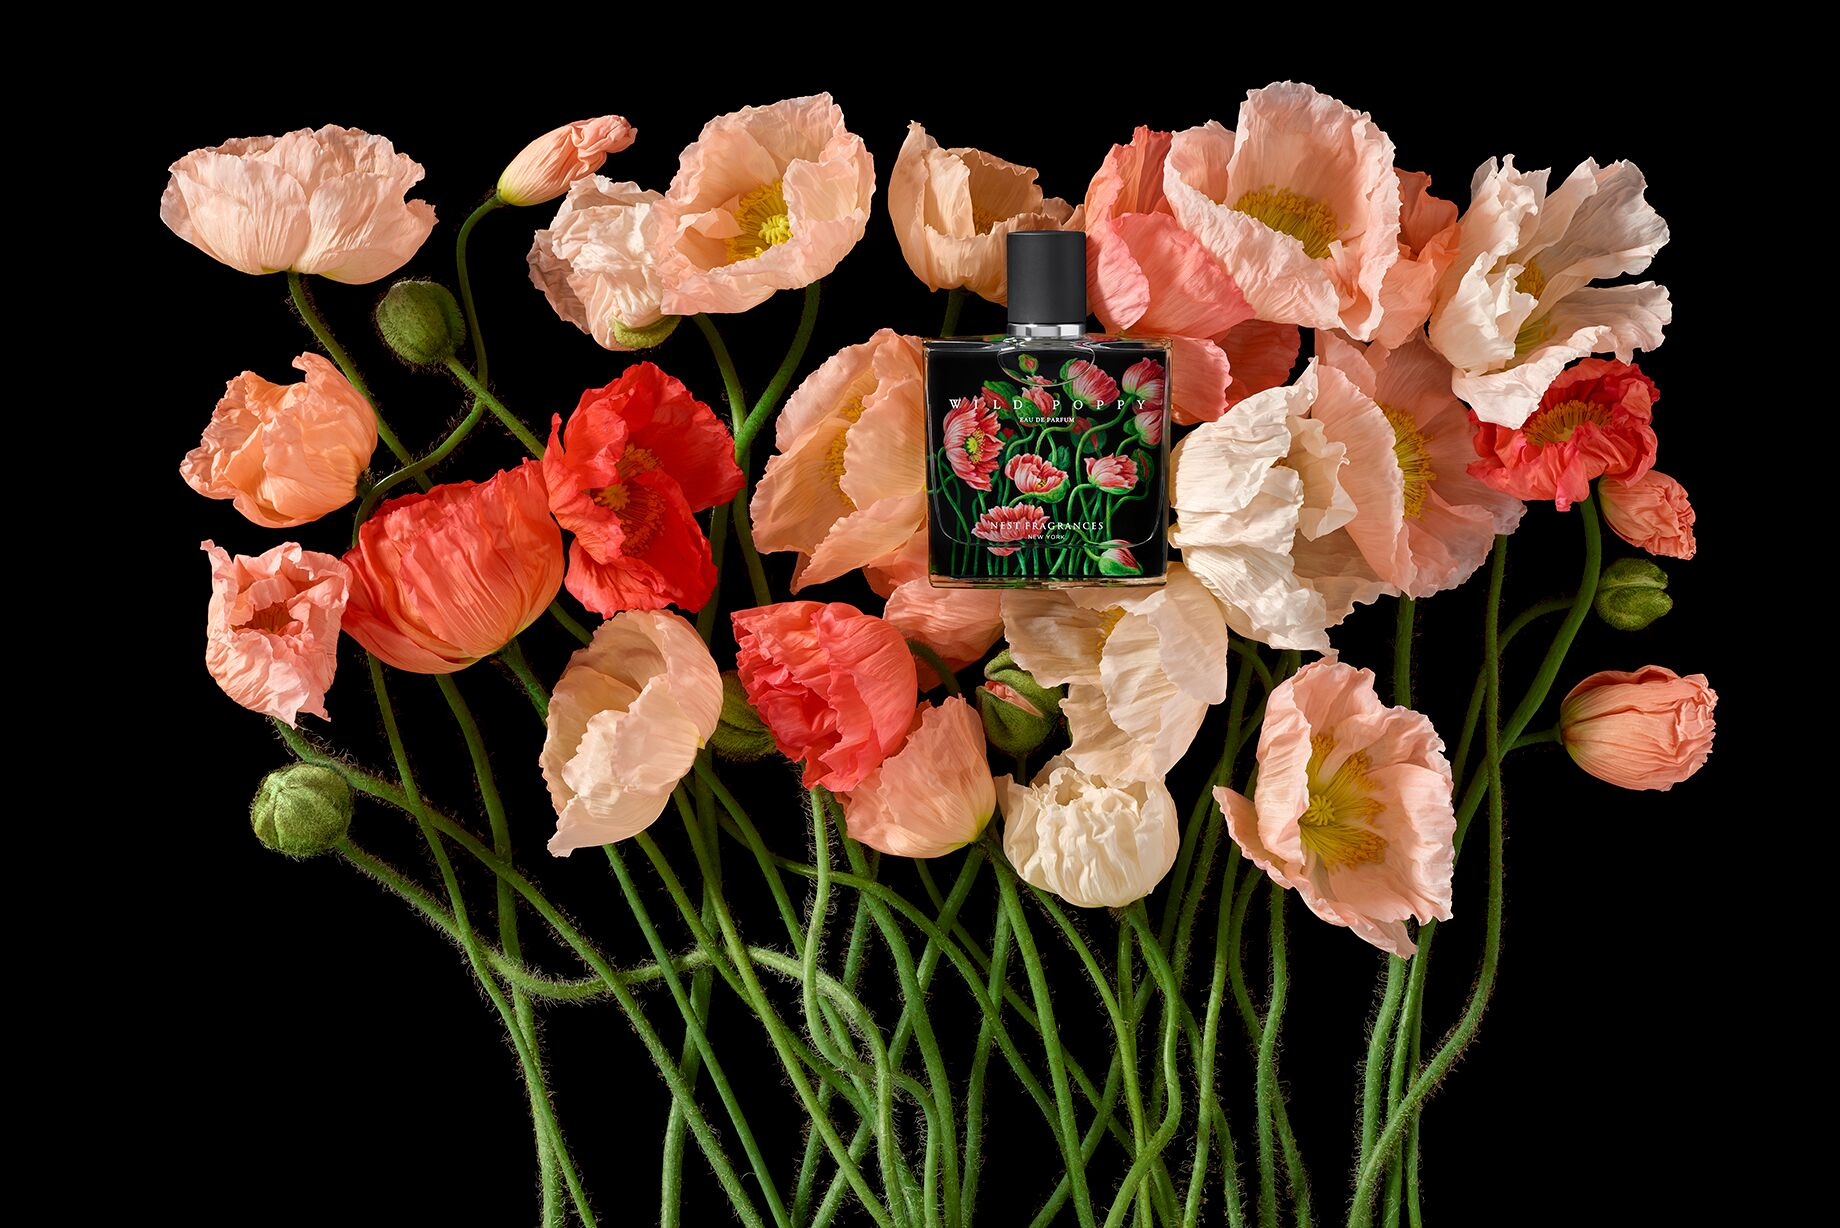 Perfume of the Month: Wild Poppy by Nest Fragrances